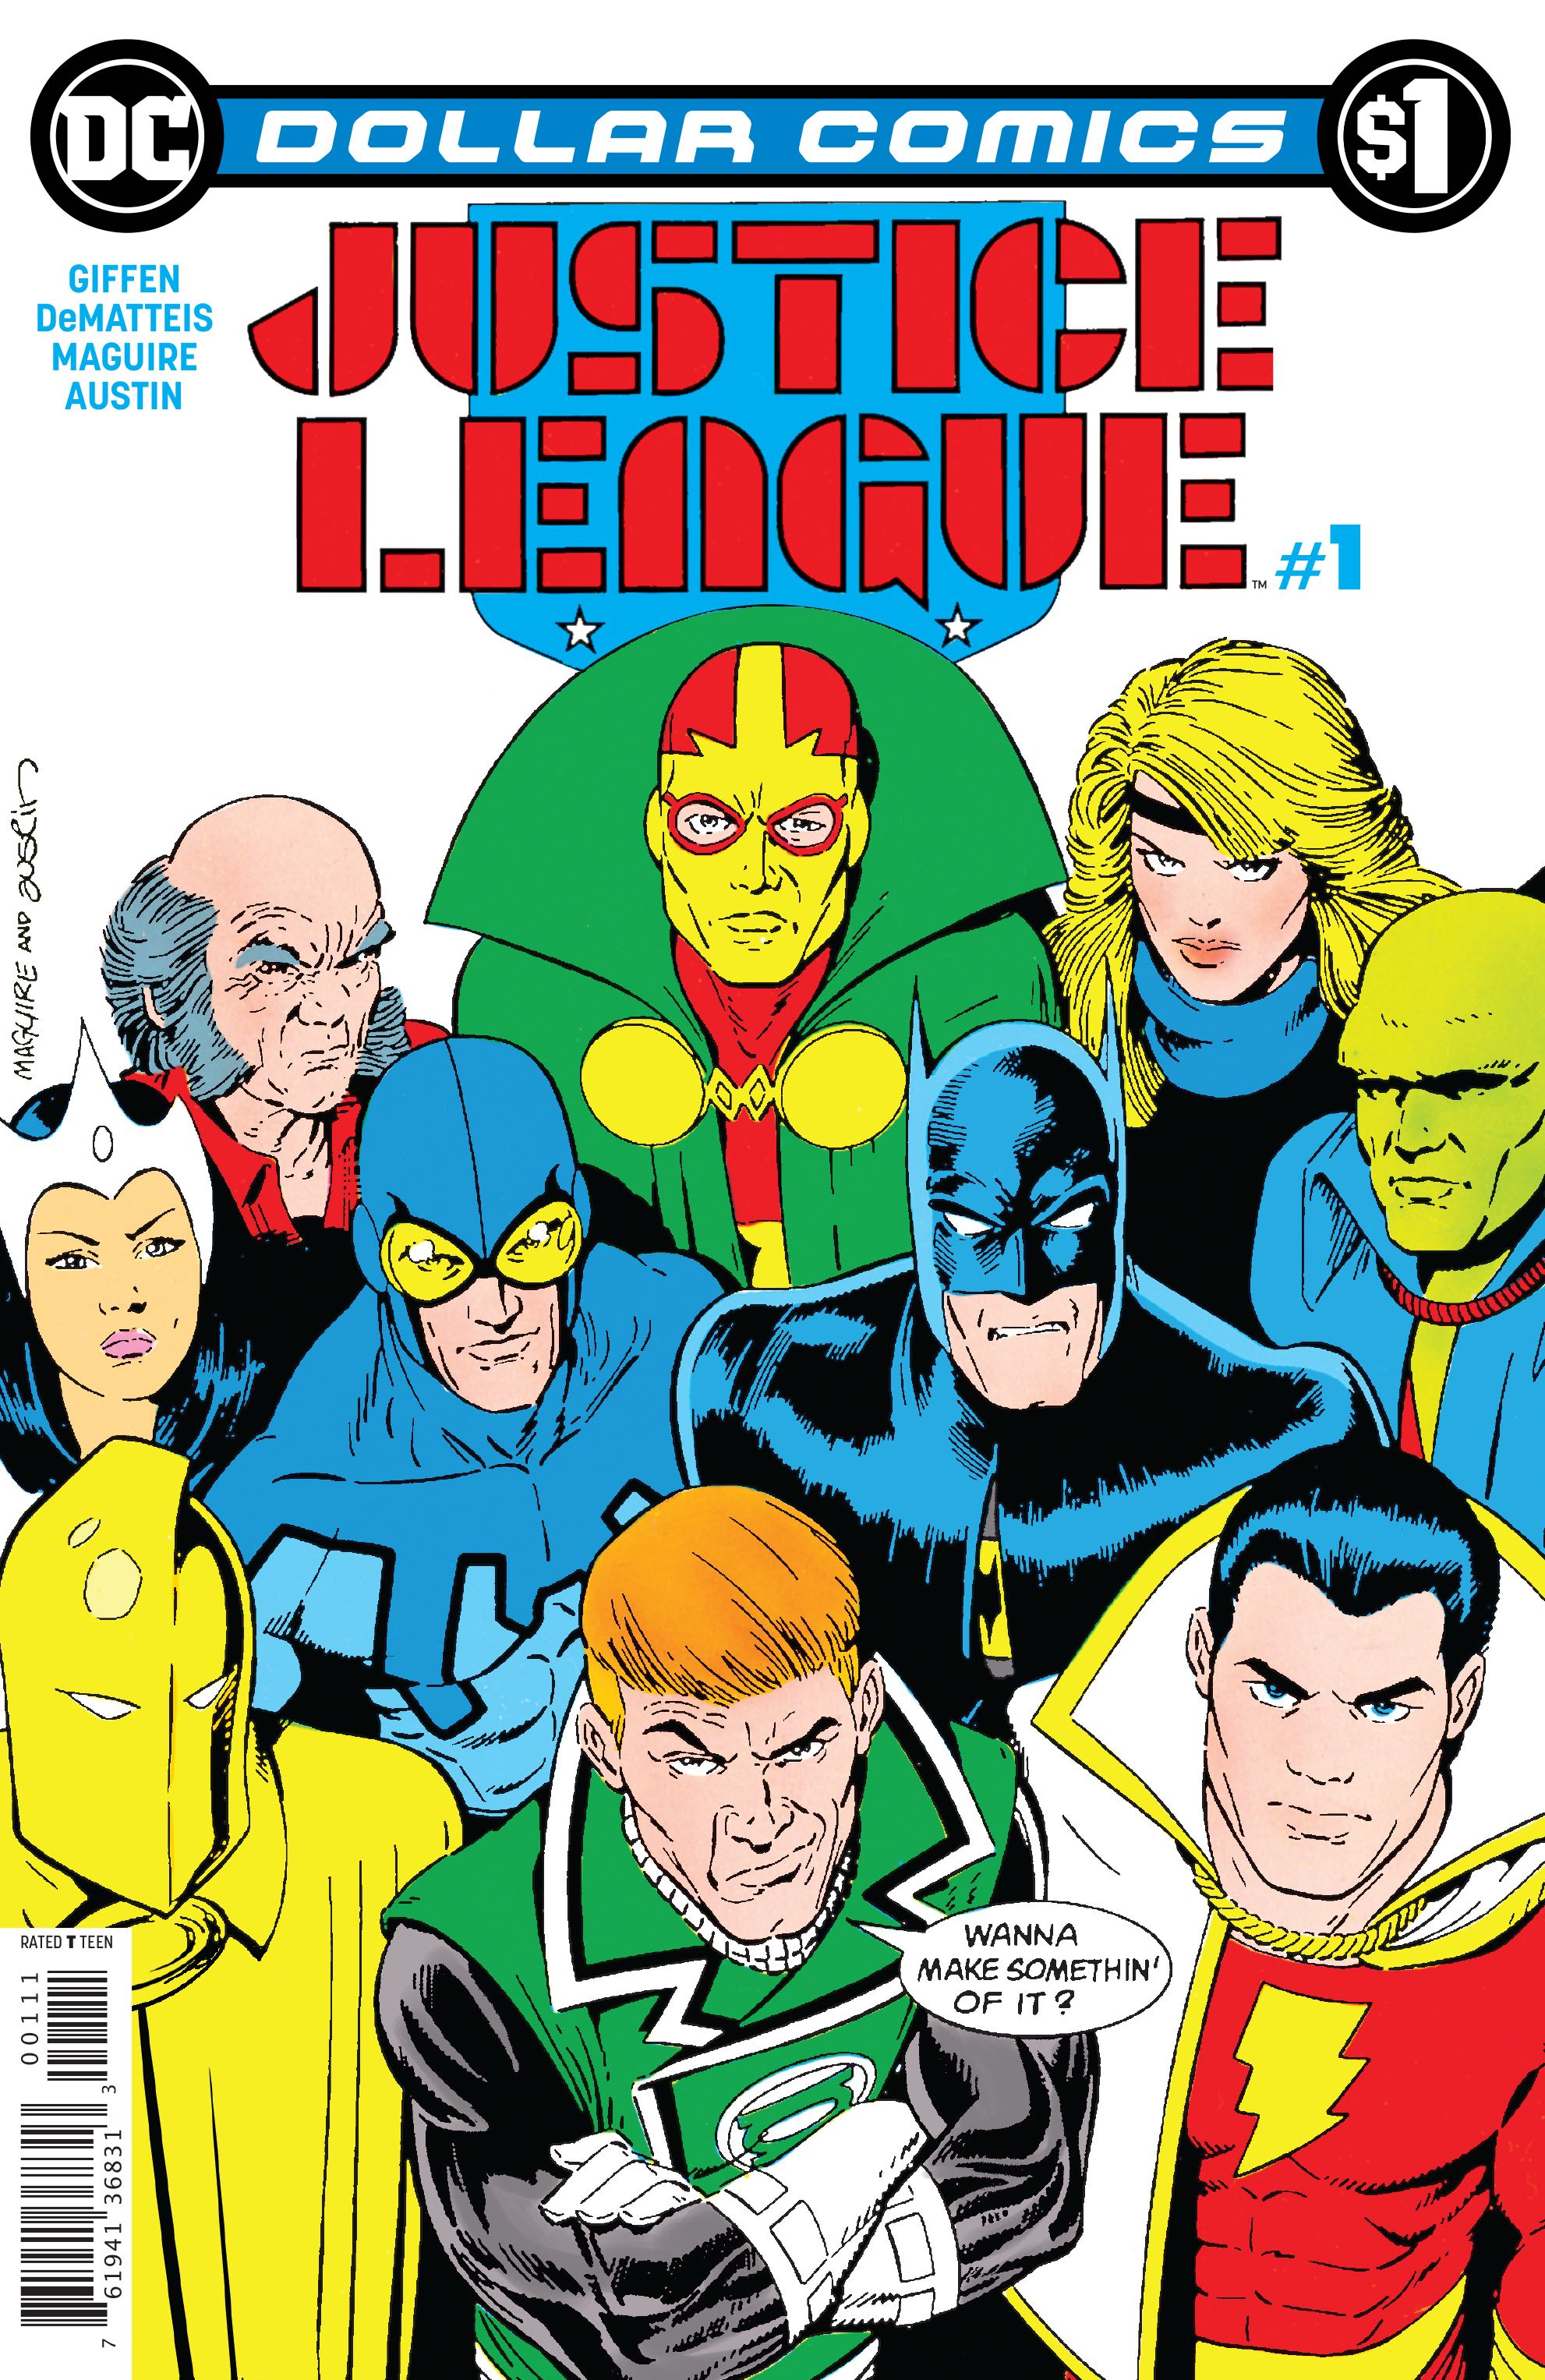 Dollar Comics: Justice League Vol 1 1